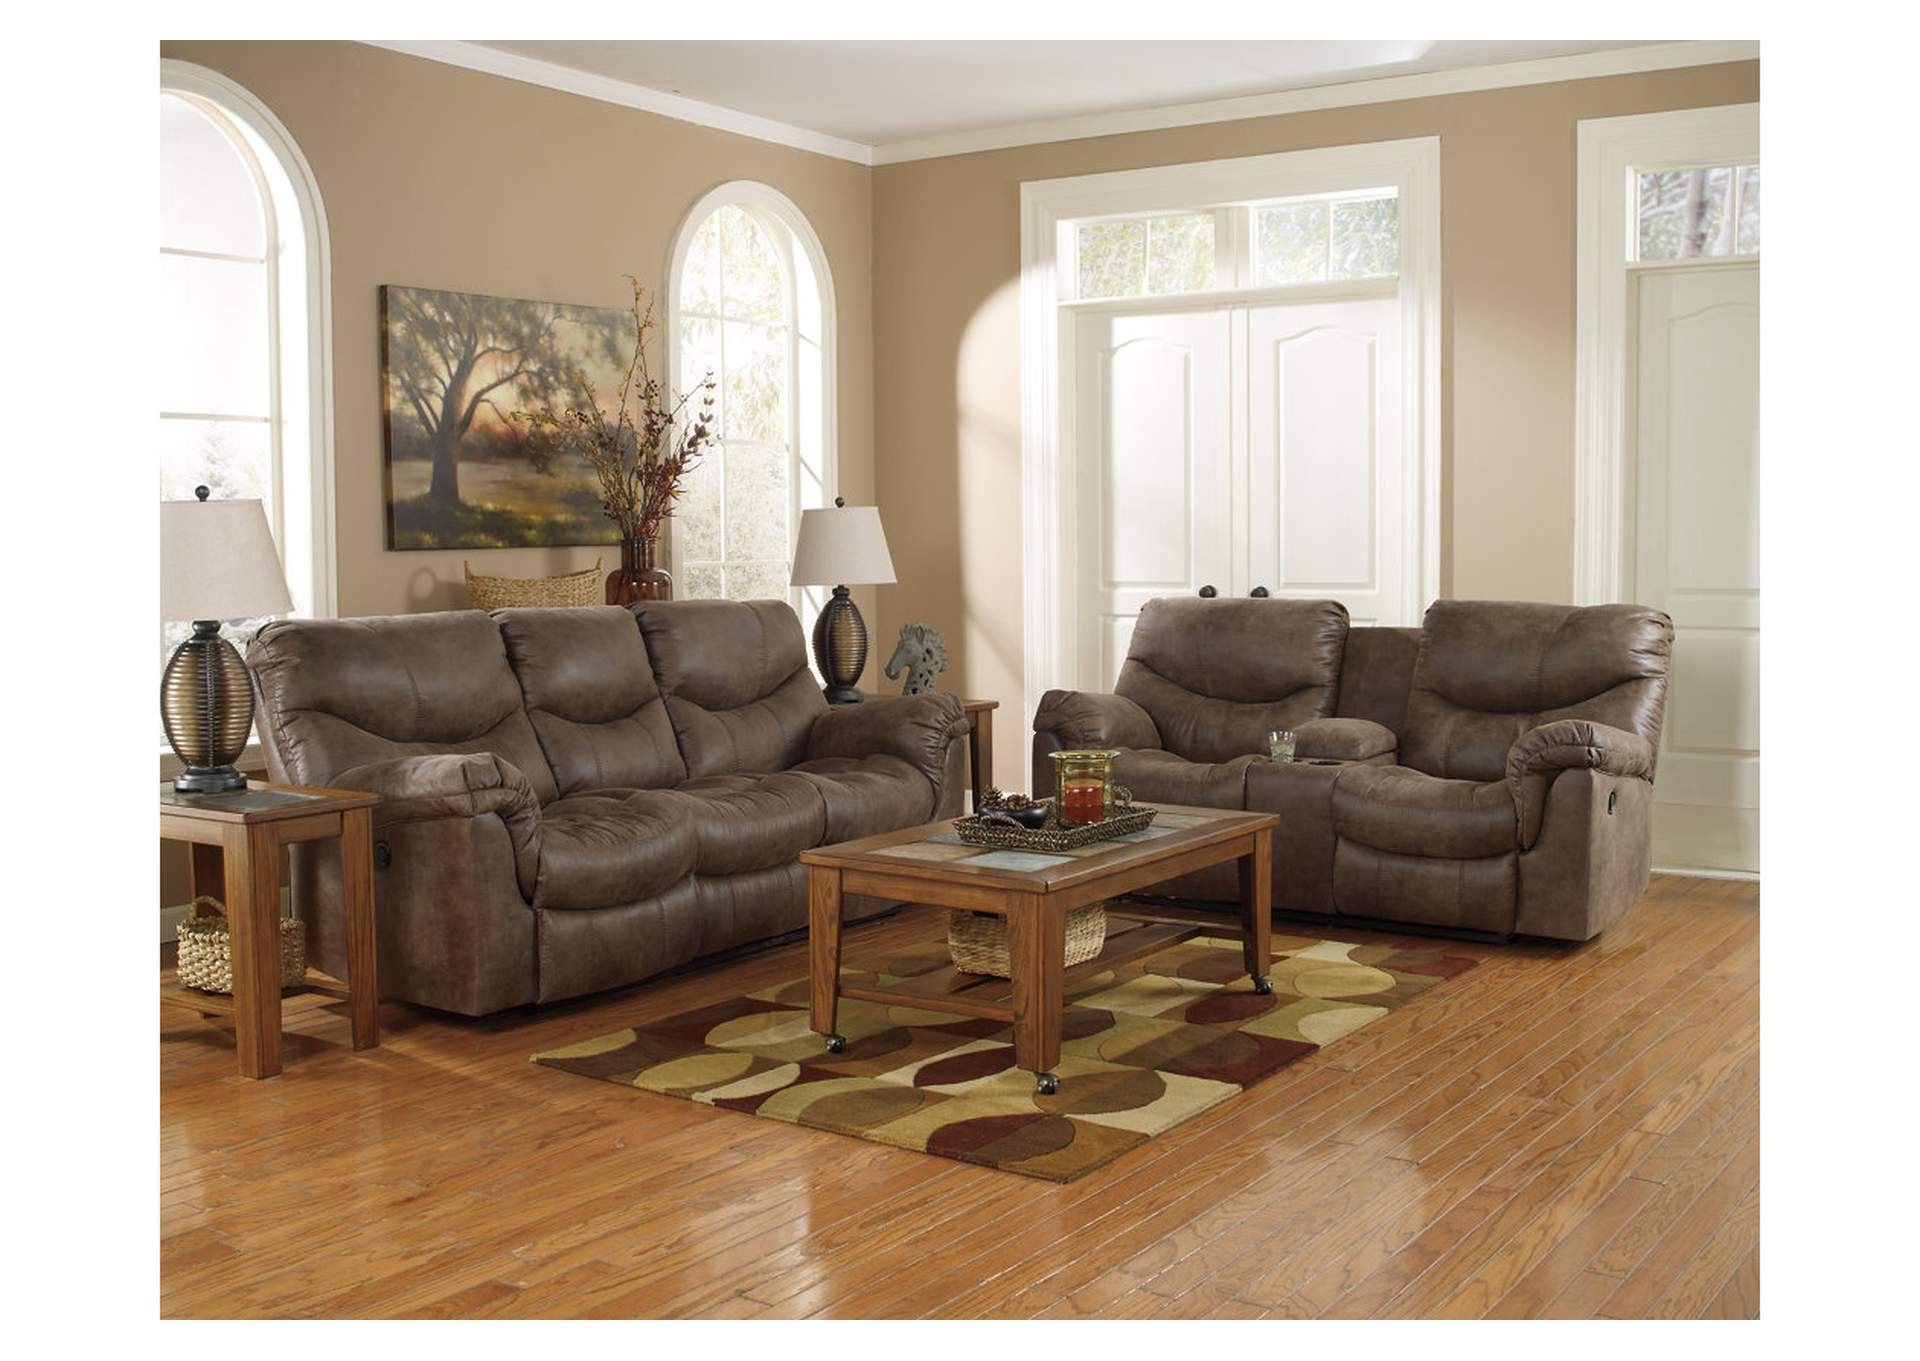 Alzena Gunsmoke Double Reclining Loveseat w/ Console,Signature Design By Ashley